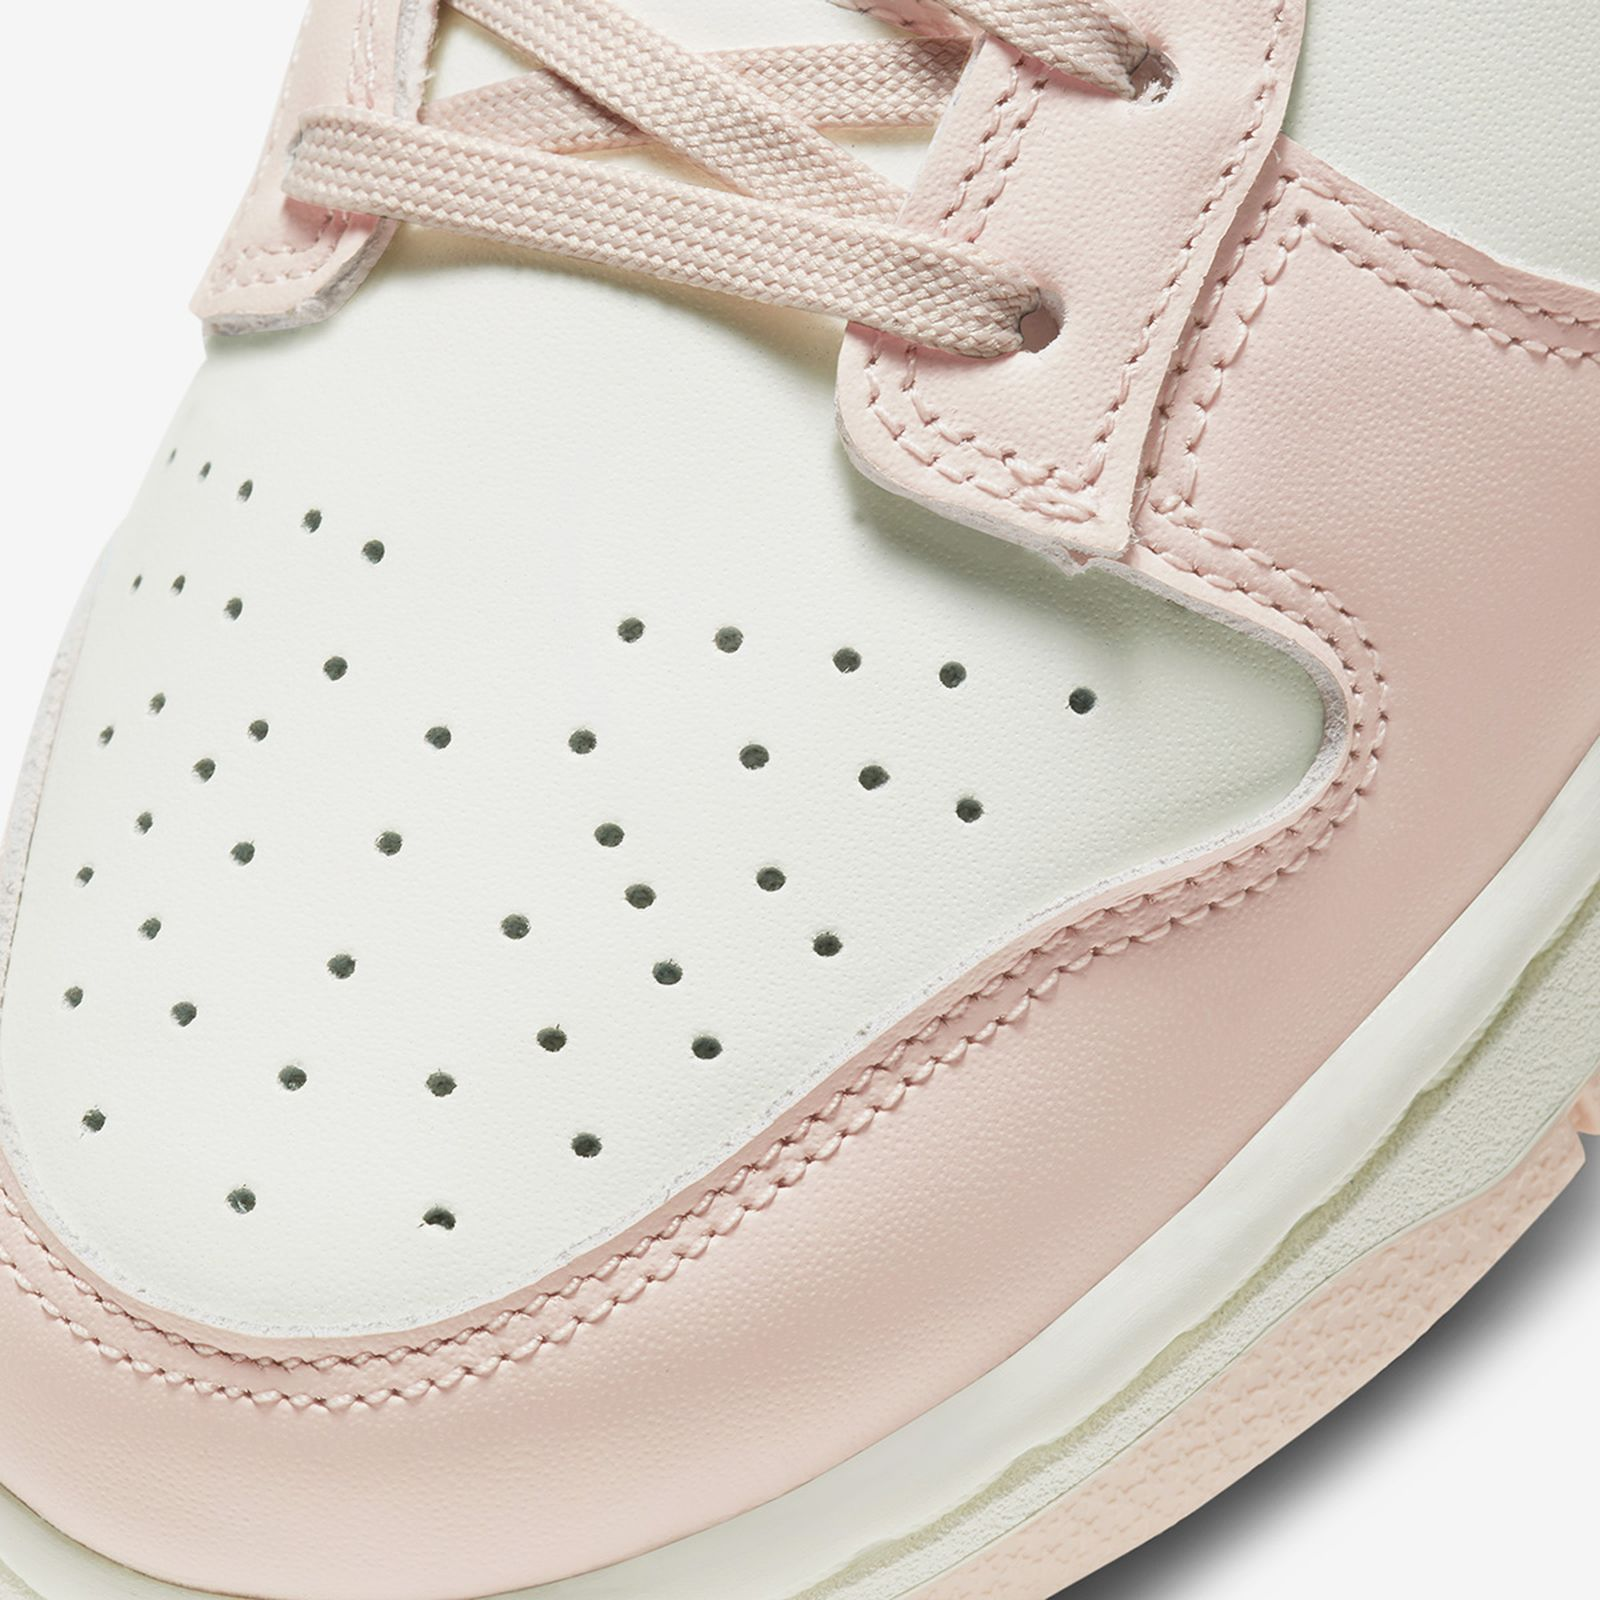 nike-dunk-spring-2021-release-date-price-1-29